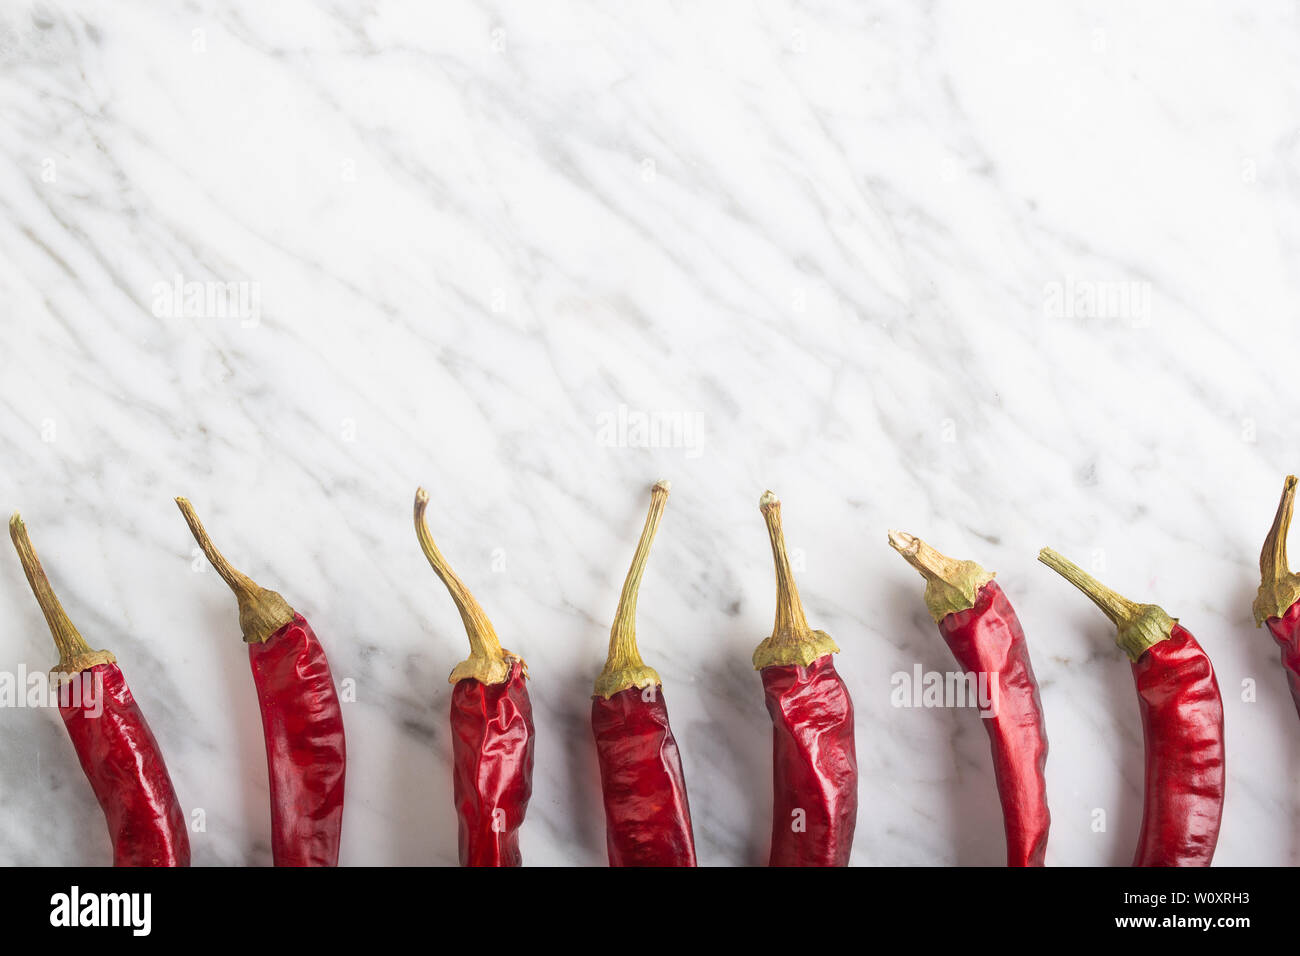 Spicy Chili peppers on stone background  This condiment